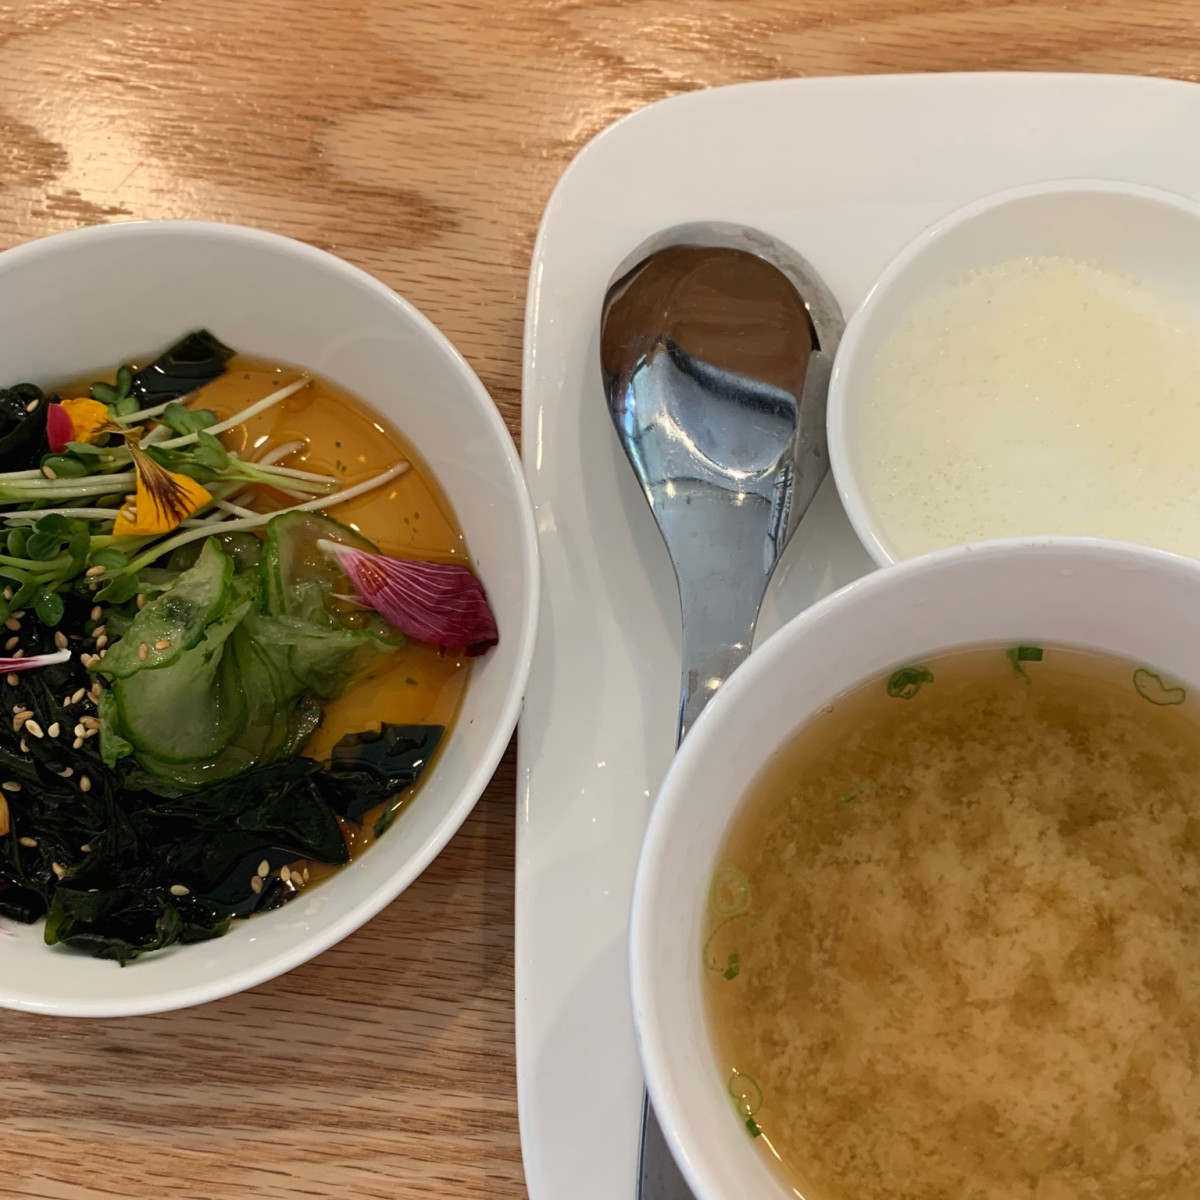 Hando soup and salad